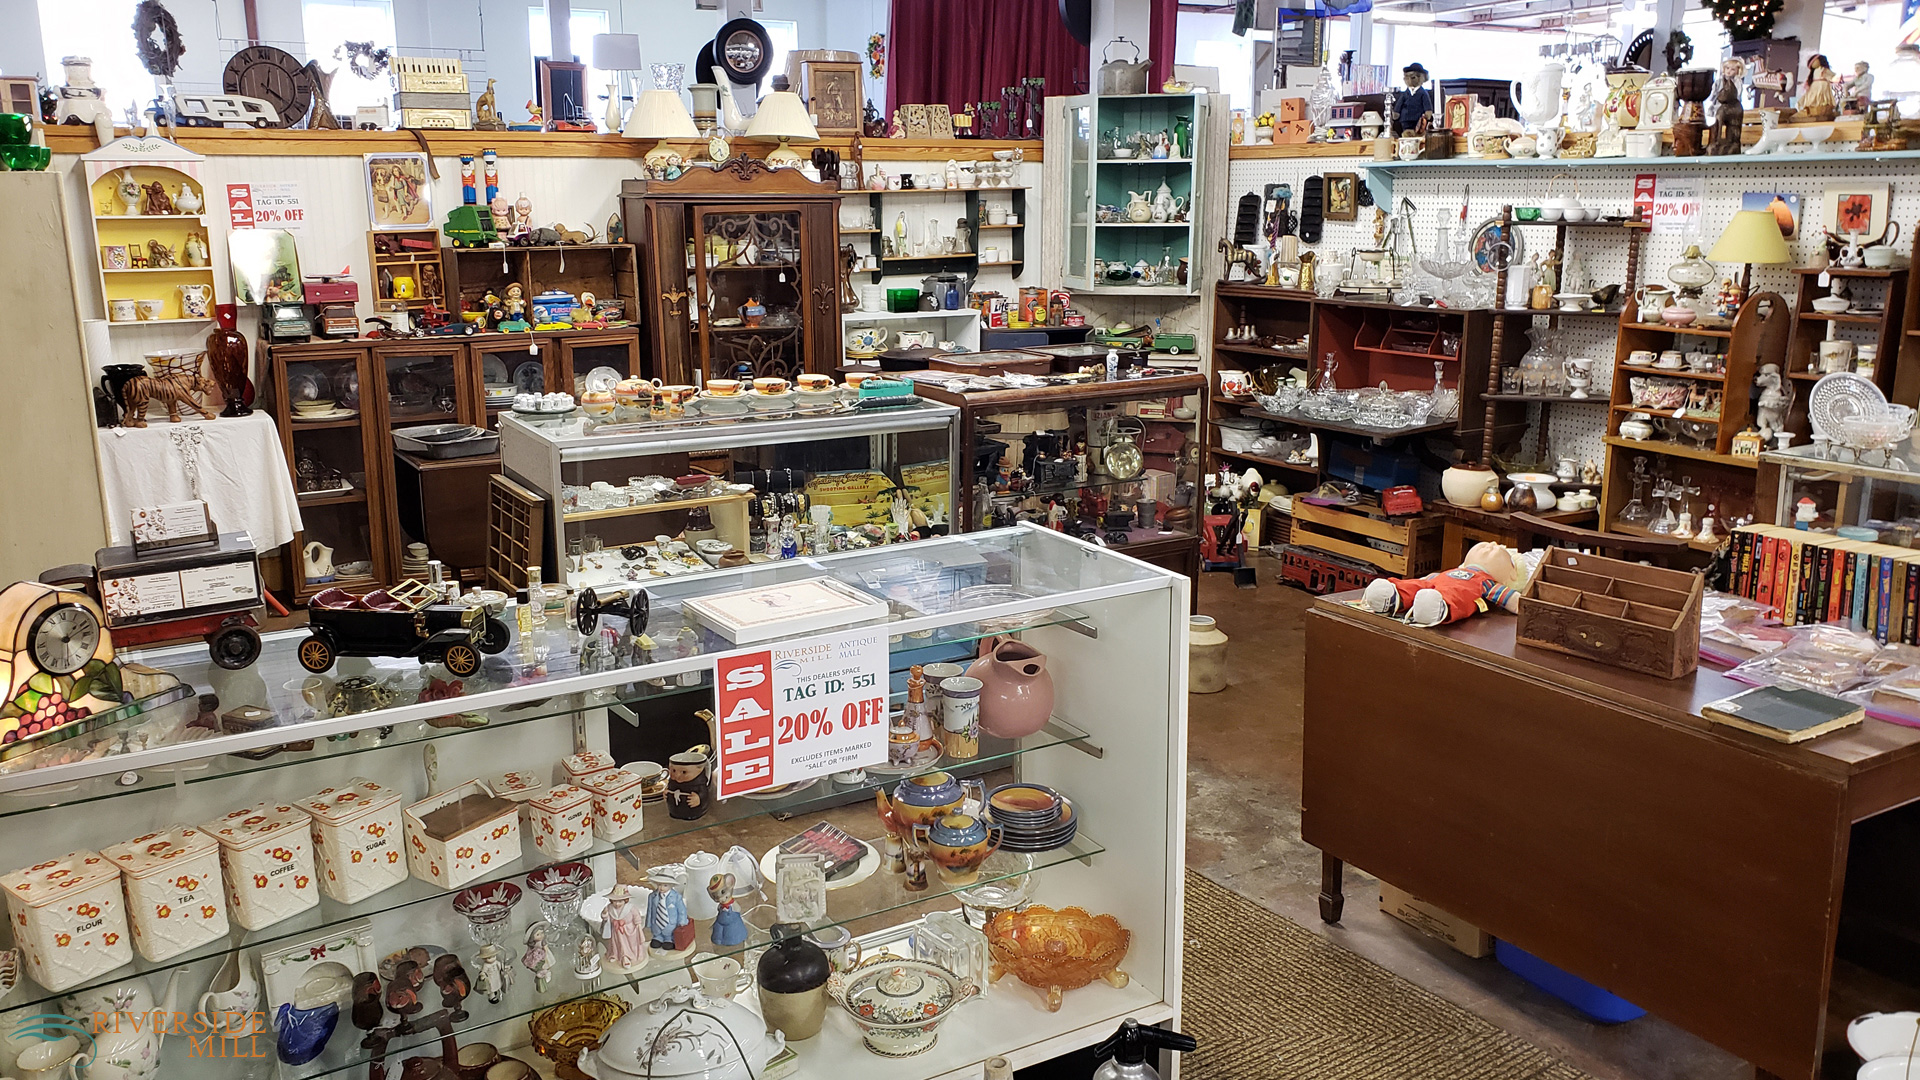 Riverside Mill Antique Mall in Weldon, NC